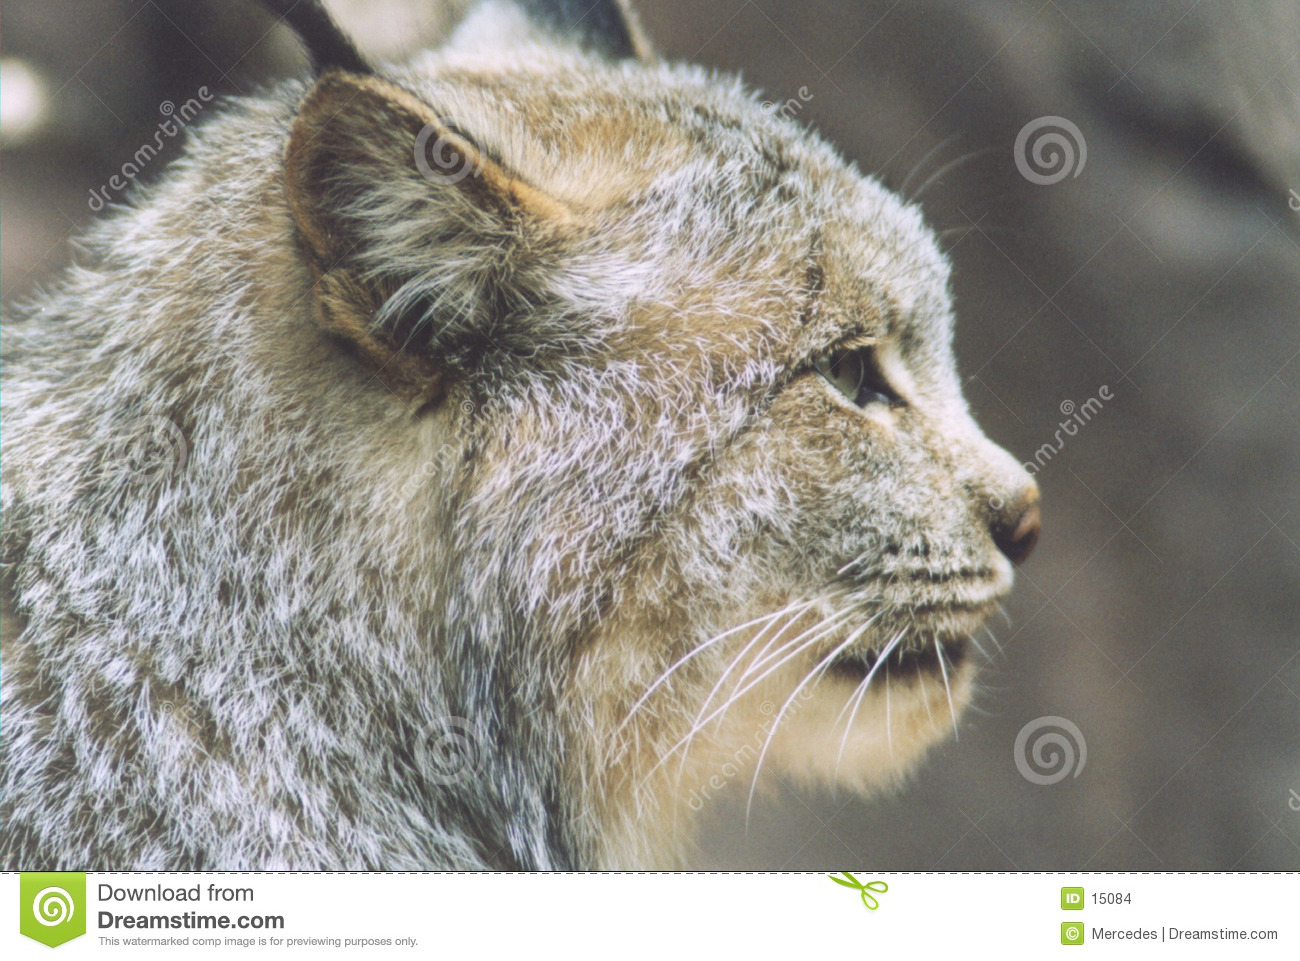 Perfil do lince